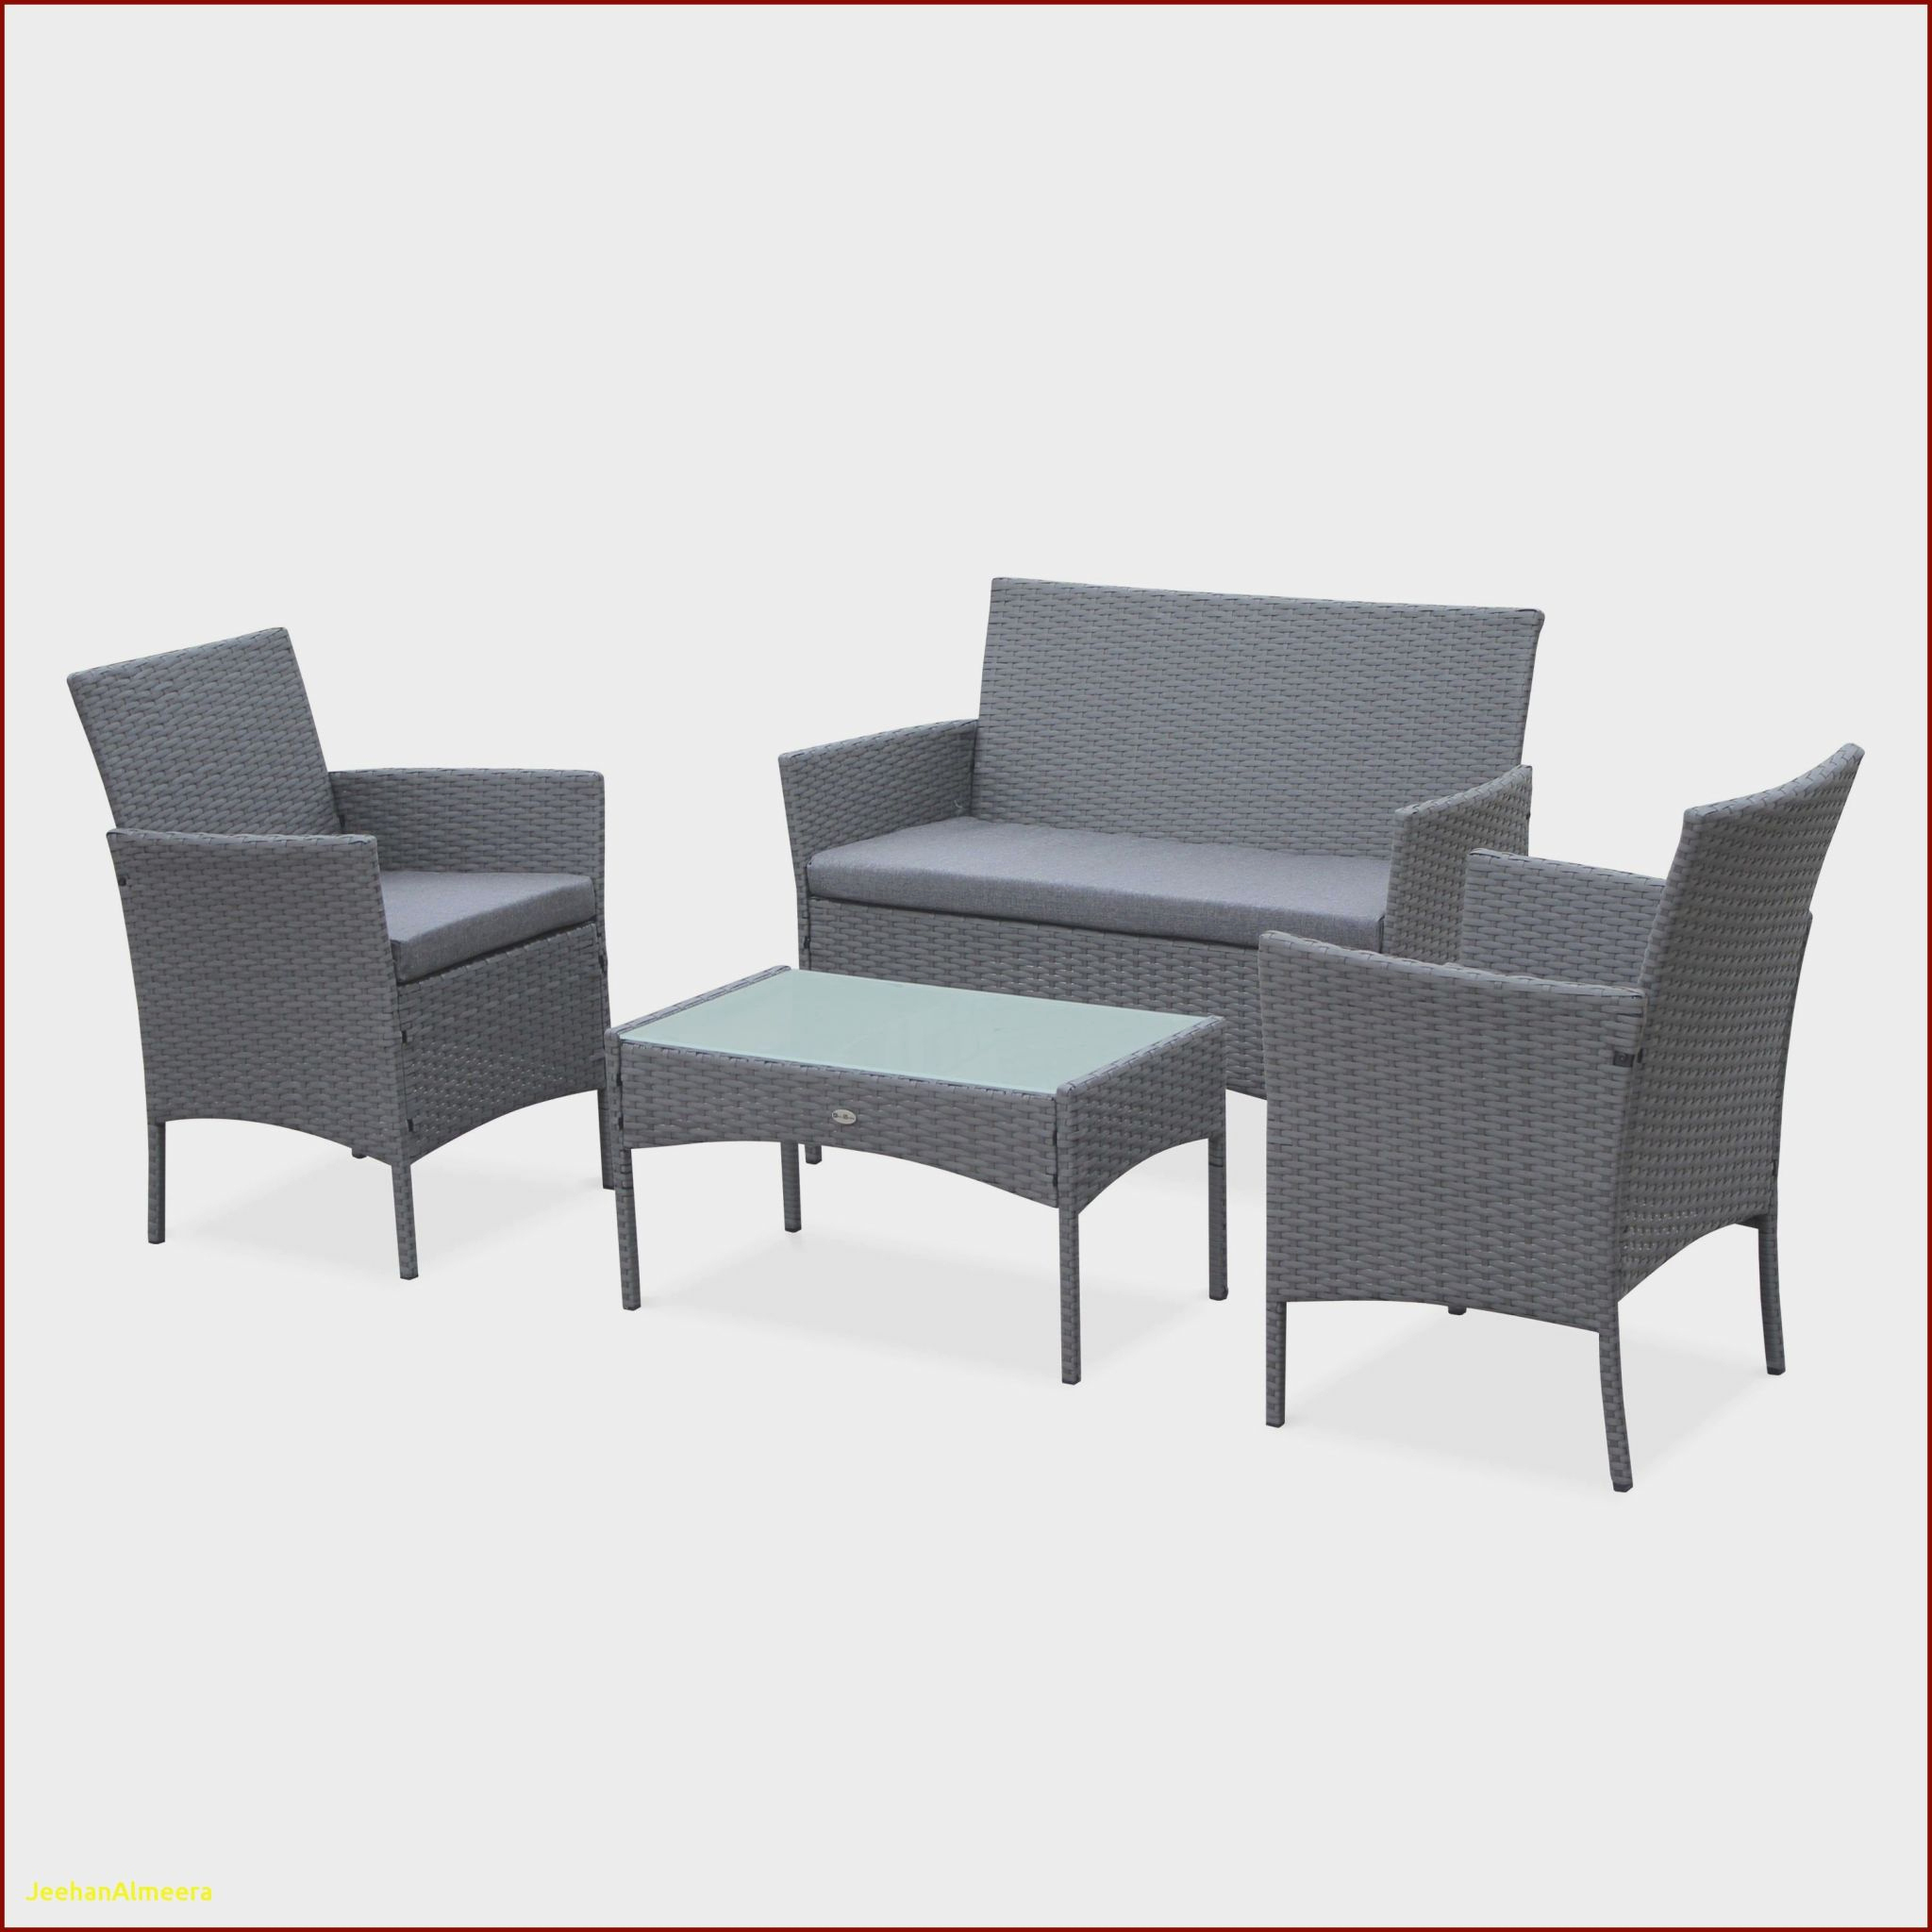 ensemble table et chaise jardin beau ensemble table et chaise but beau s macabane salon de jardin of ensemble table et chaise jardin